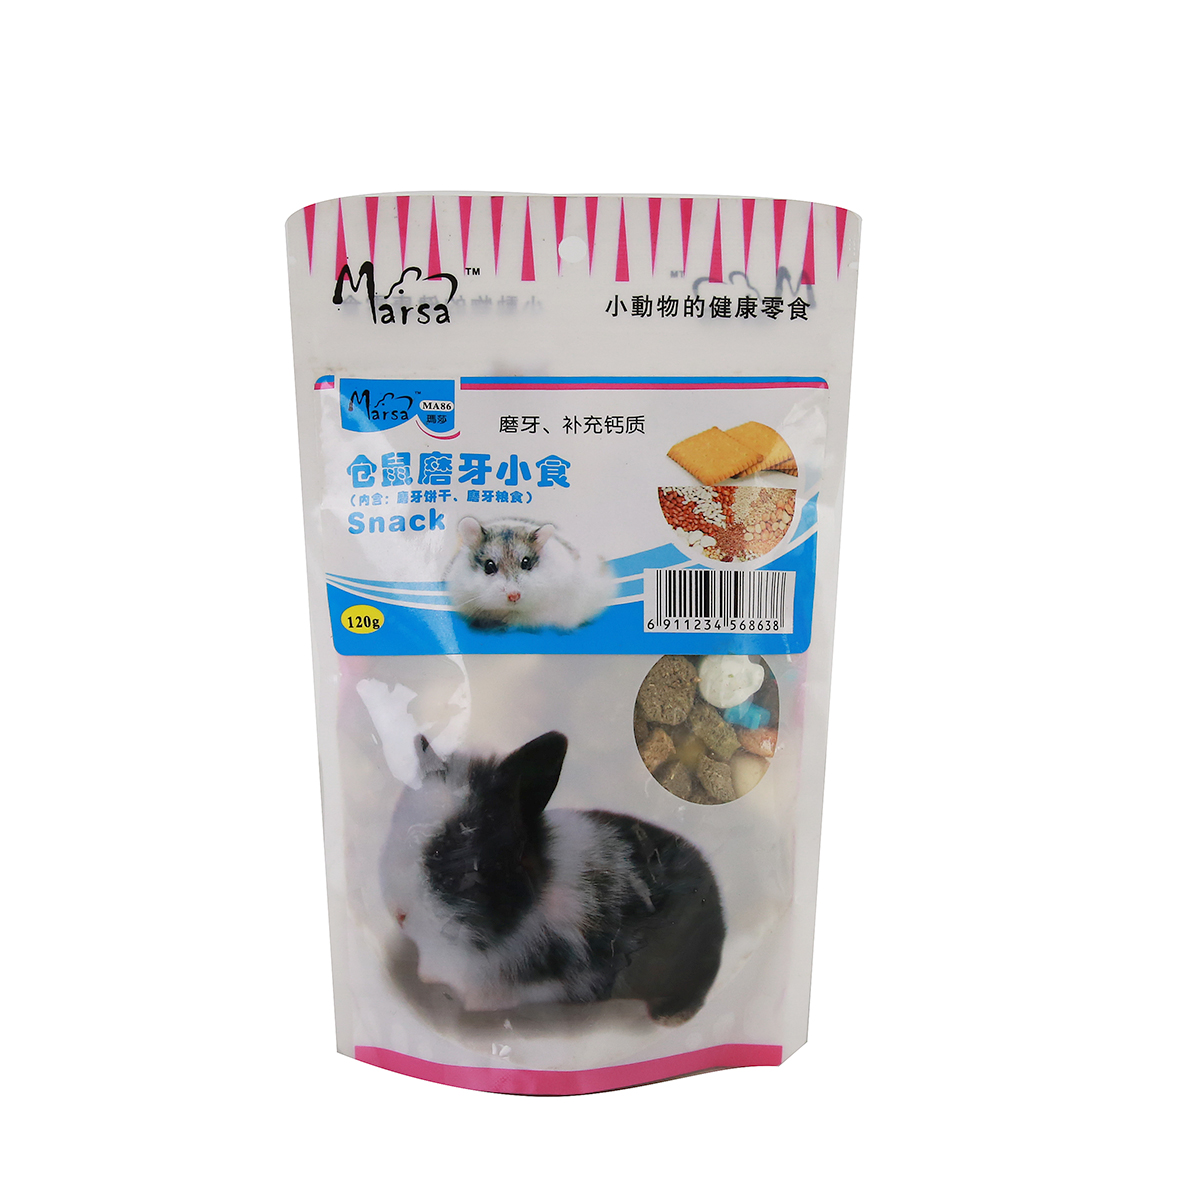 Porch net MA86 martha hamster molar snacks snacks hamster rabbit guinea pigs chinchillas molar snacks g